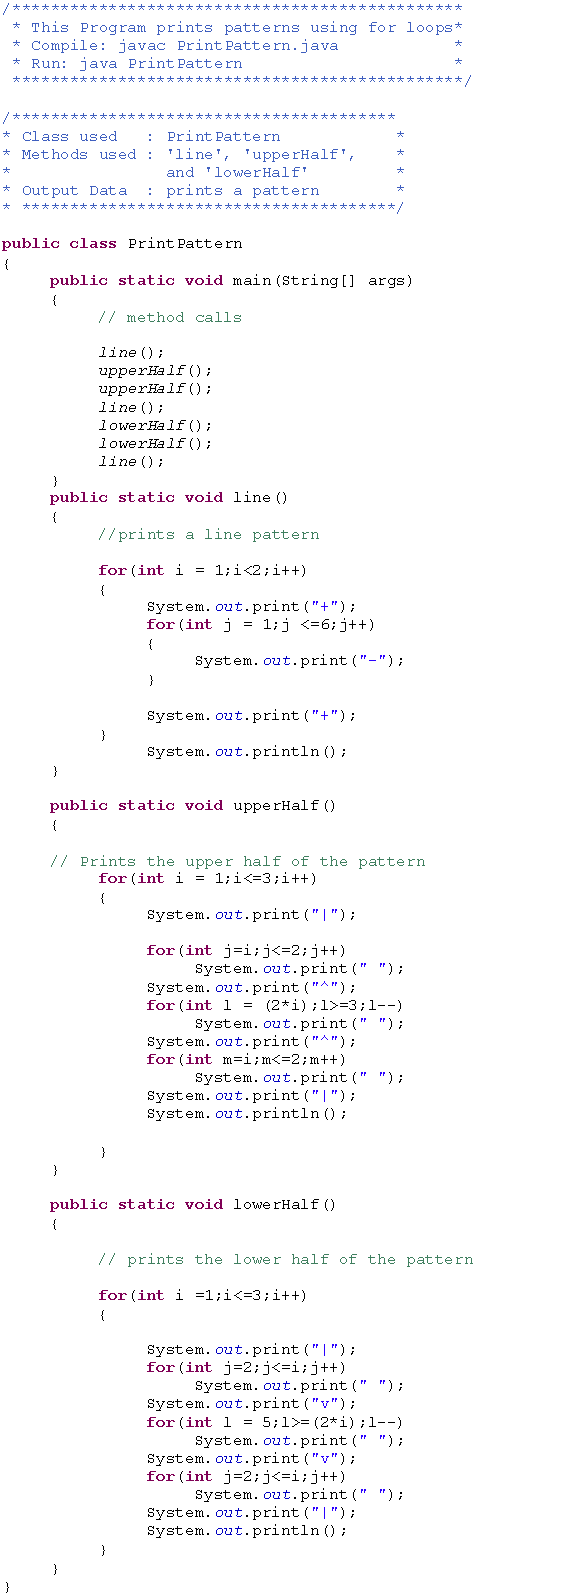 Solved: Write a program that produces the following output